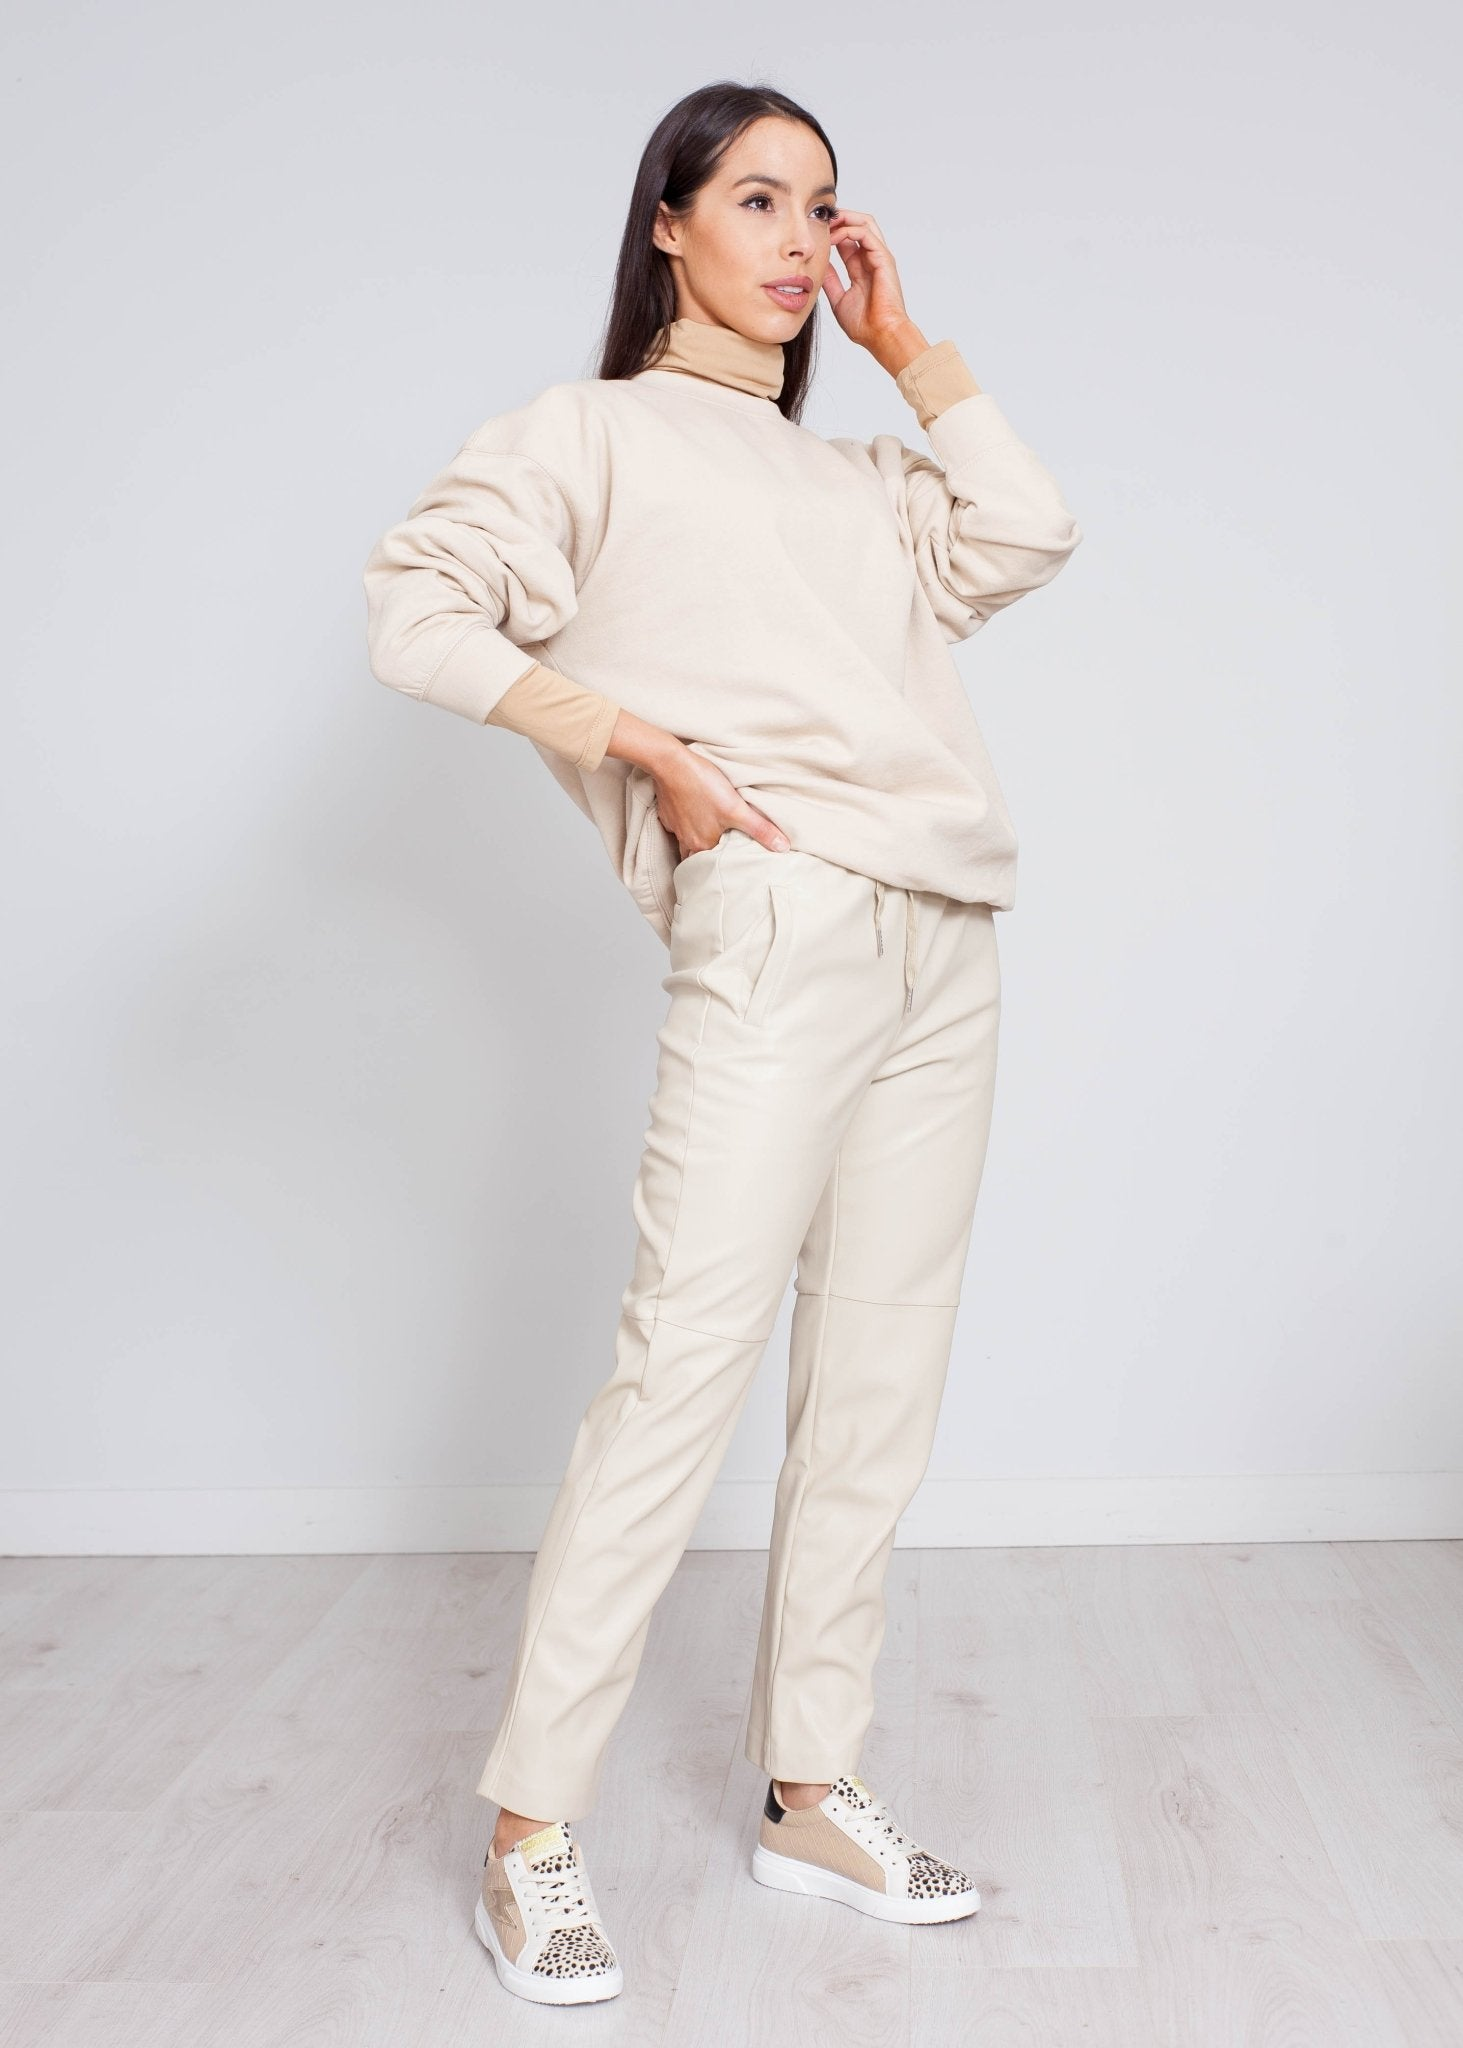 Priya Faux Leather Jogger In Cream - The Walk in Wardrobe